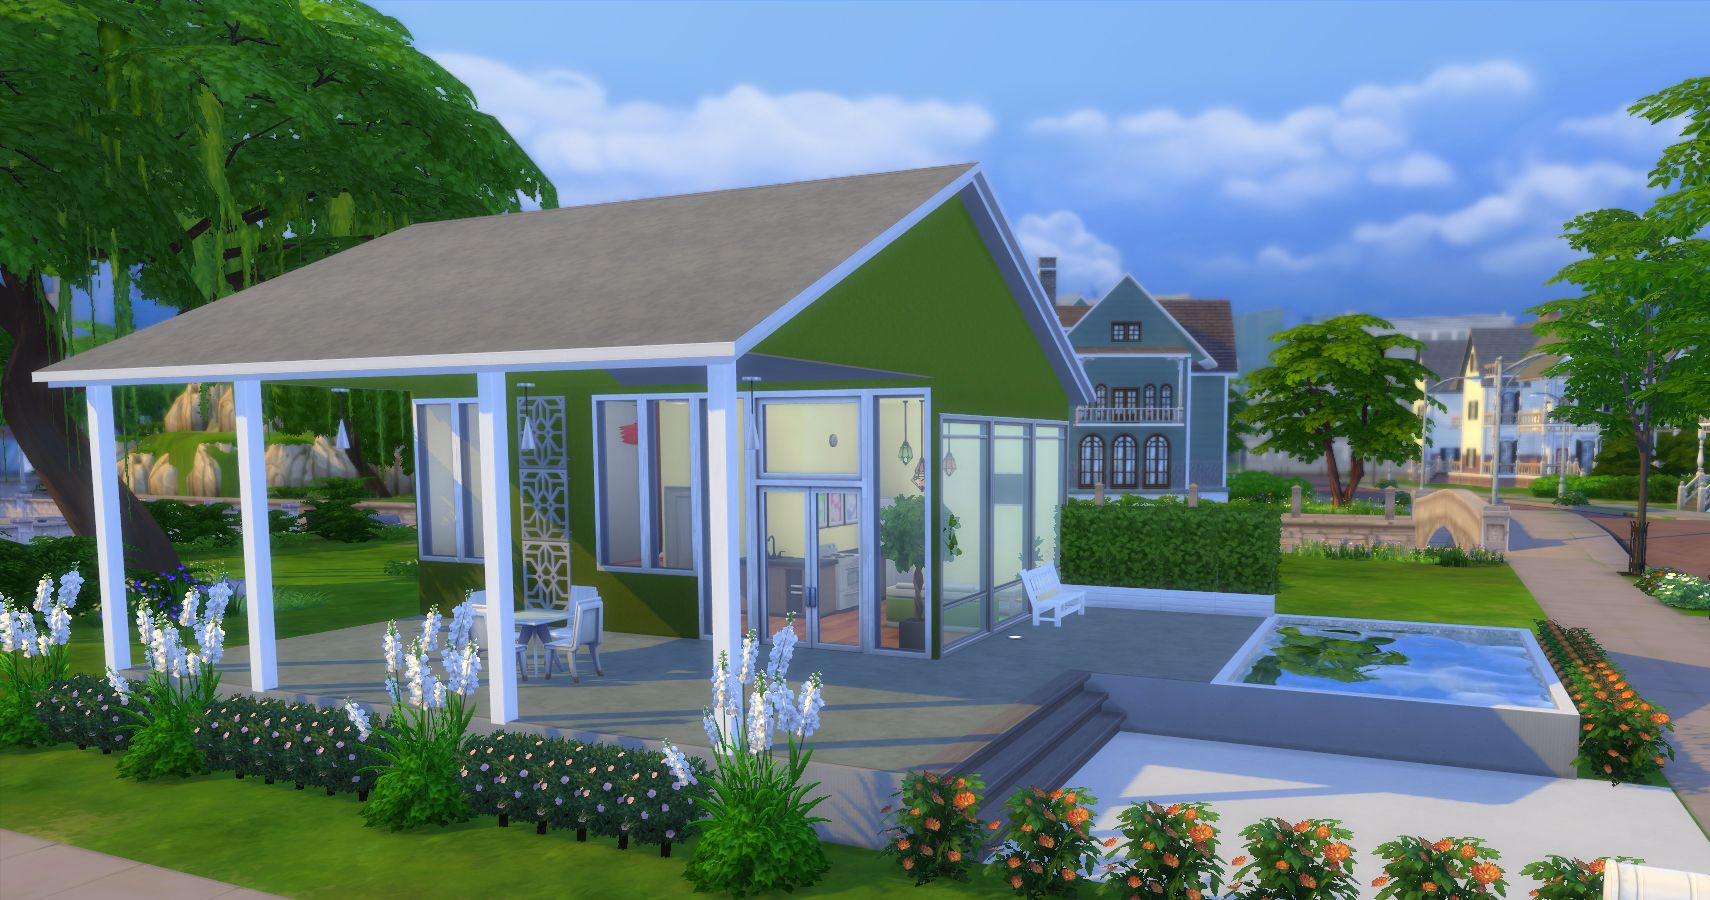 Sims 4 tiny house - 10+ Small House Ideas Sims 4  Pics